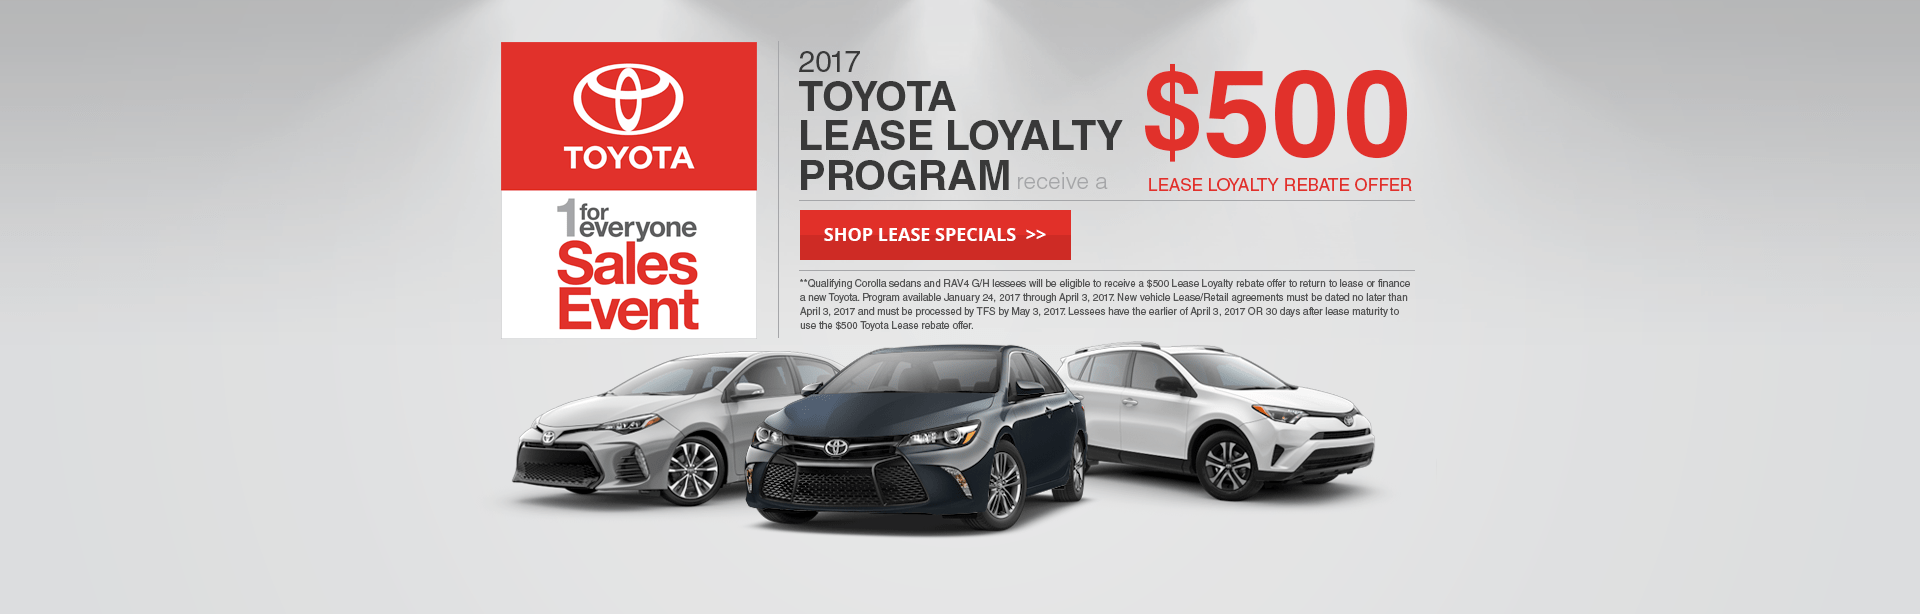 Toyota Lease Special Offer